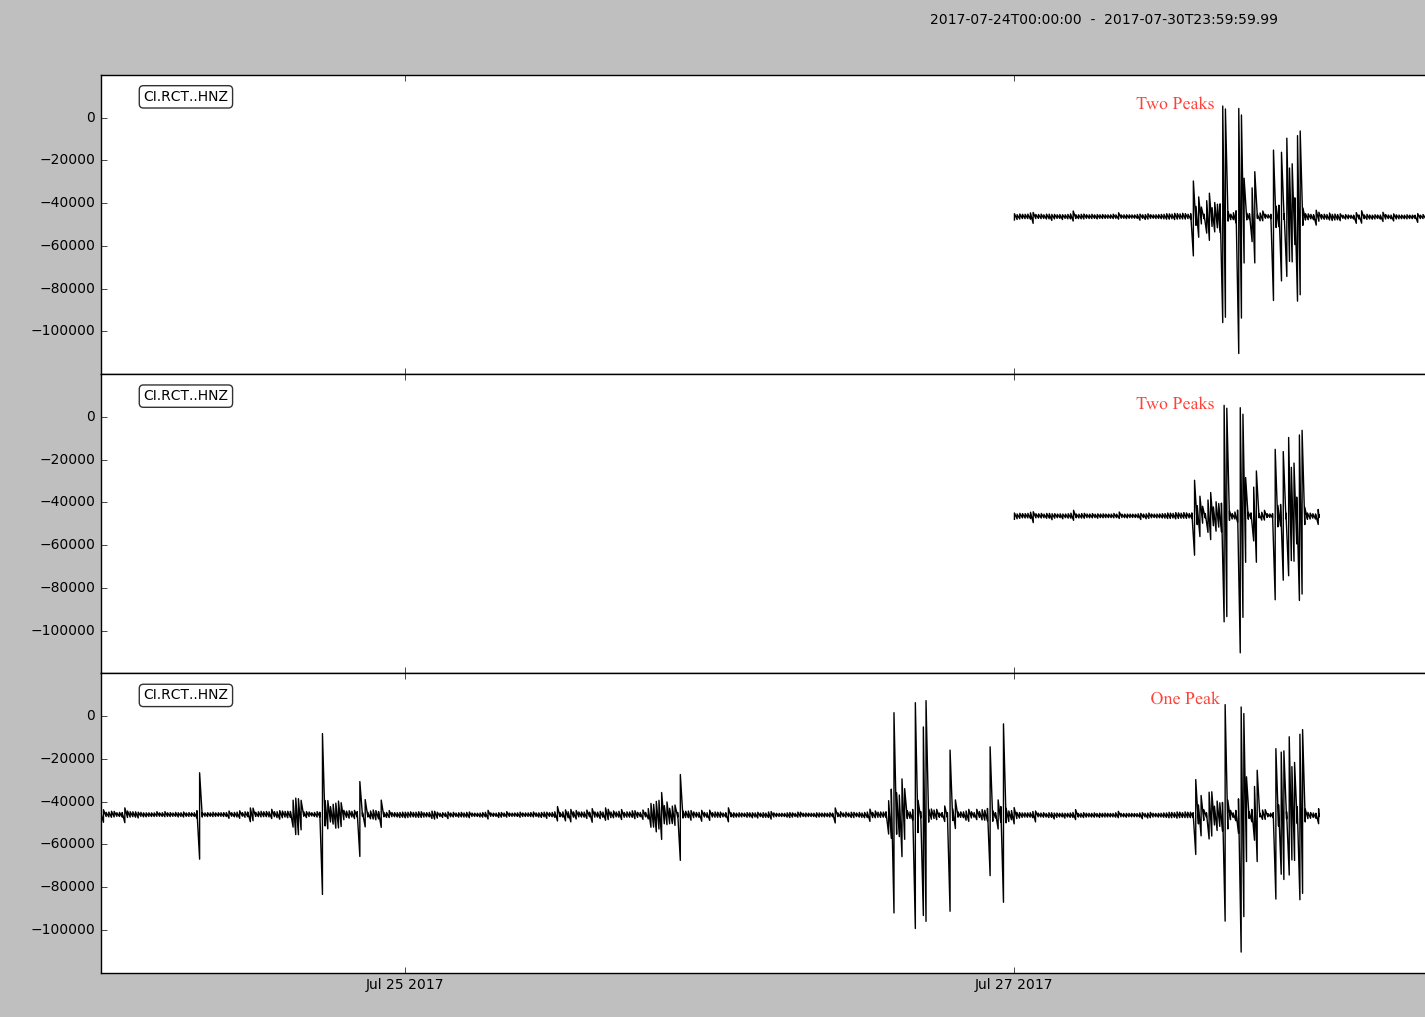 plot waveforms over multiple days does accurately plot data